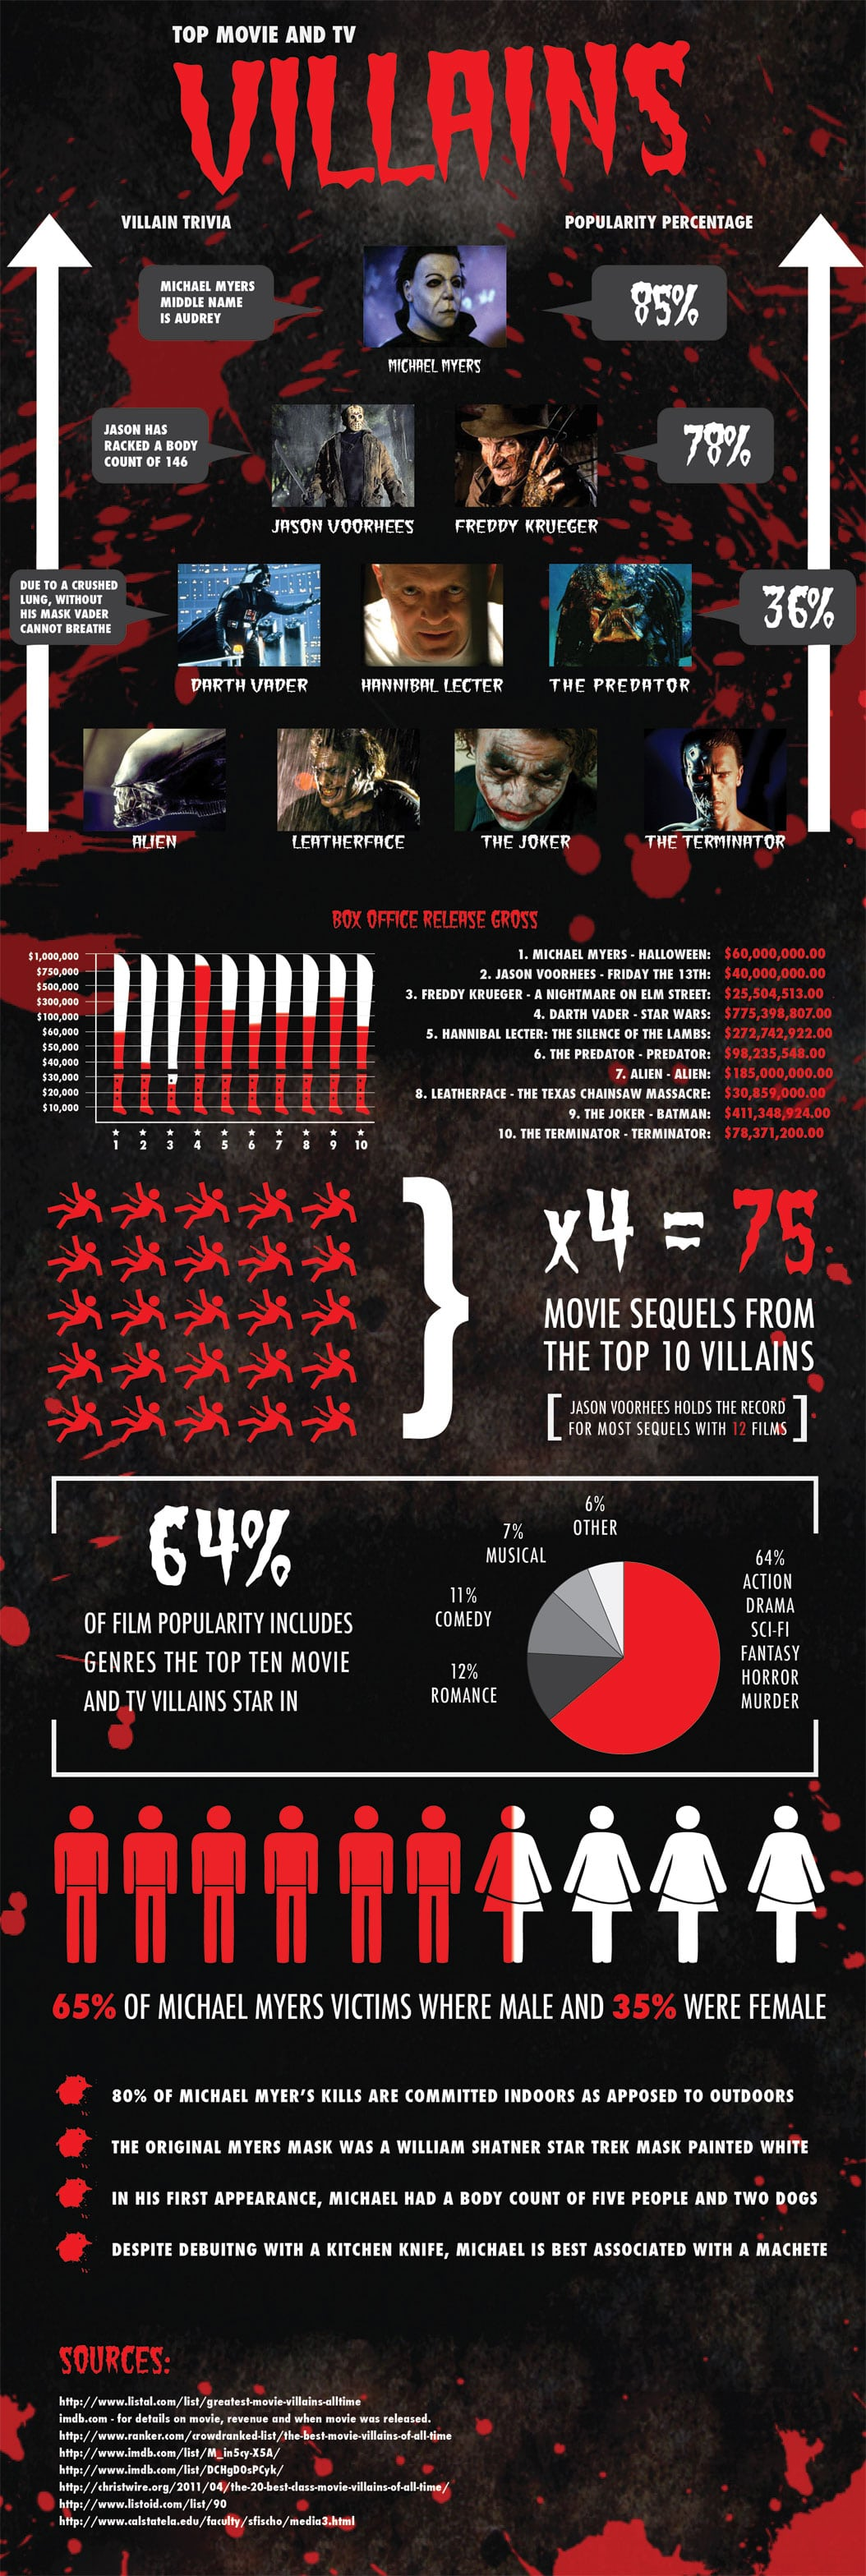 Top Movie Amp Tv Villains It S All About Horror